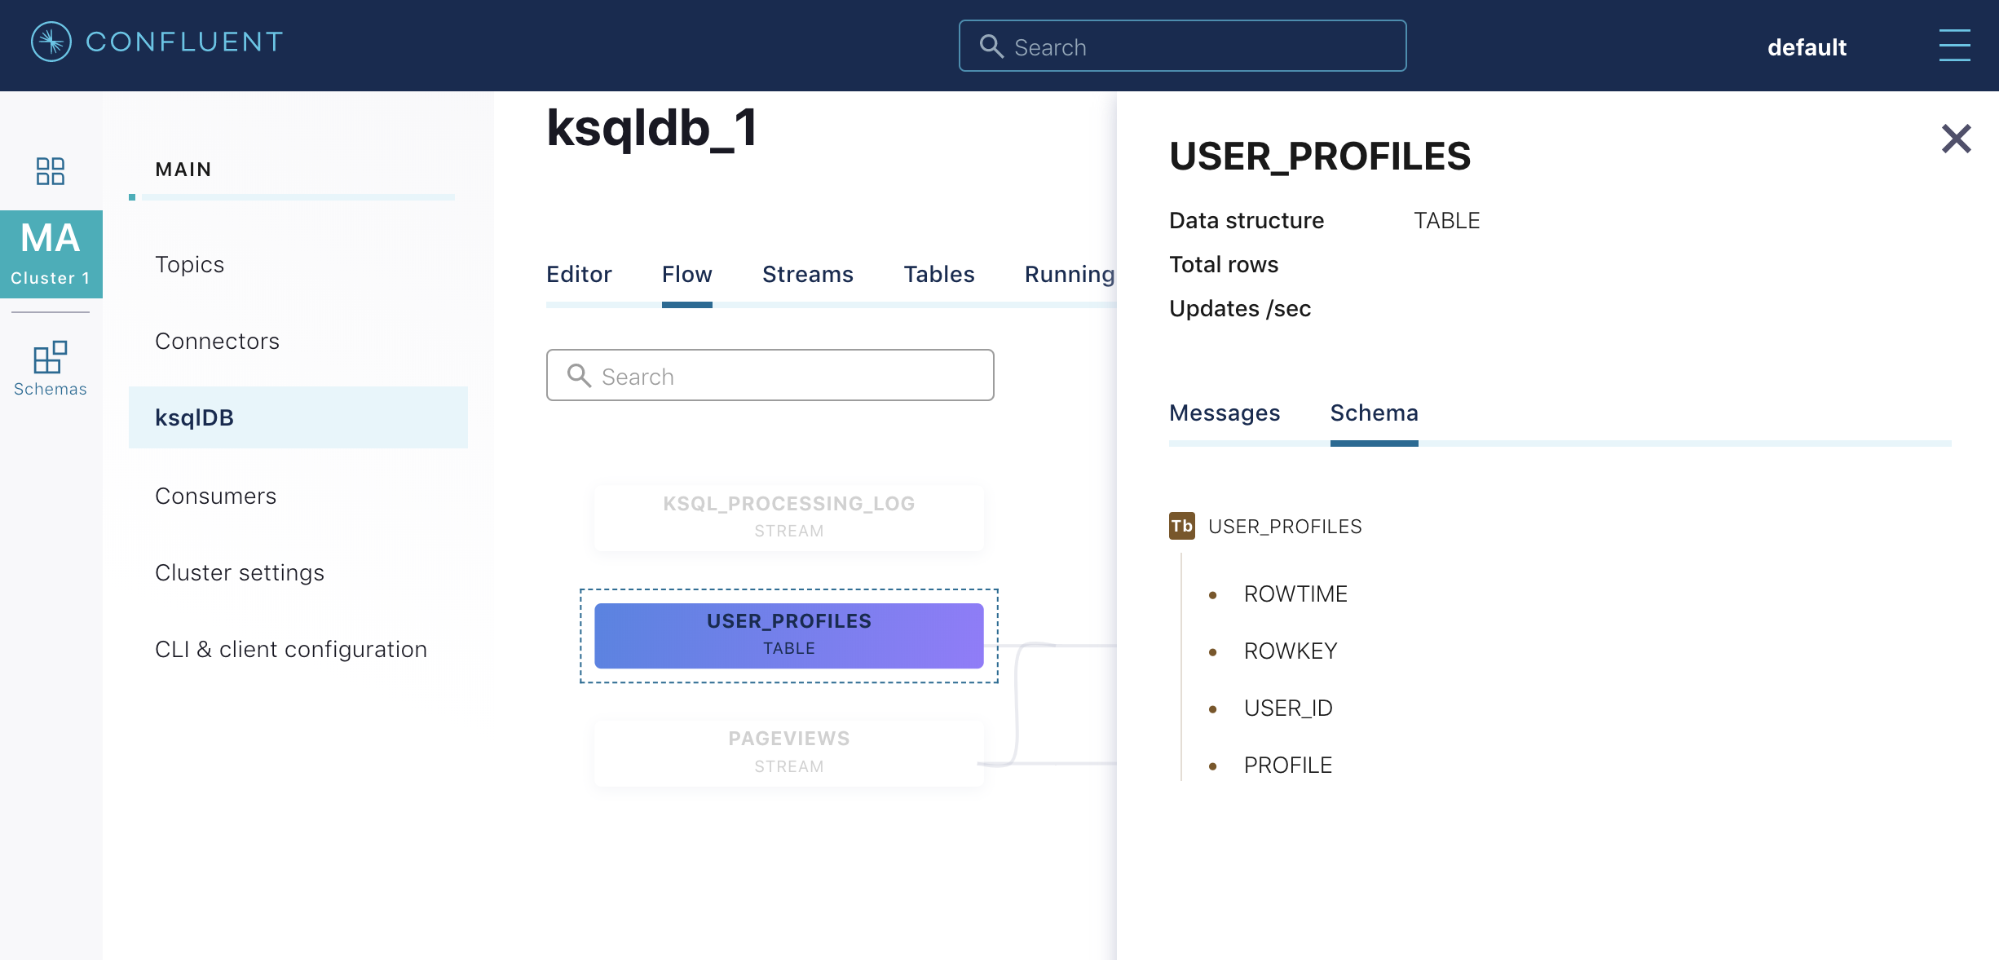 ksqldb_1 | USER_PROFILES